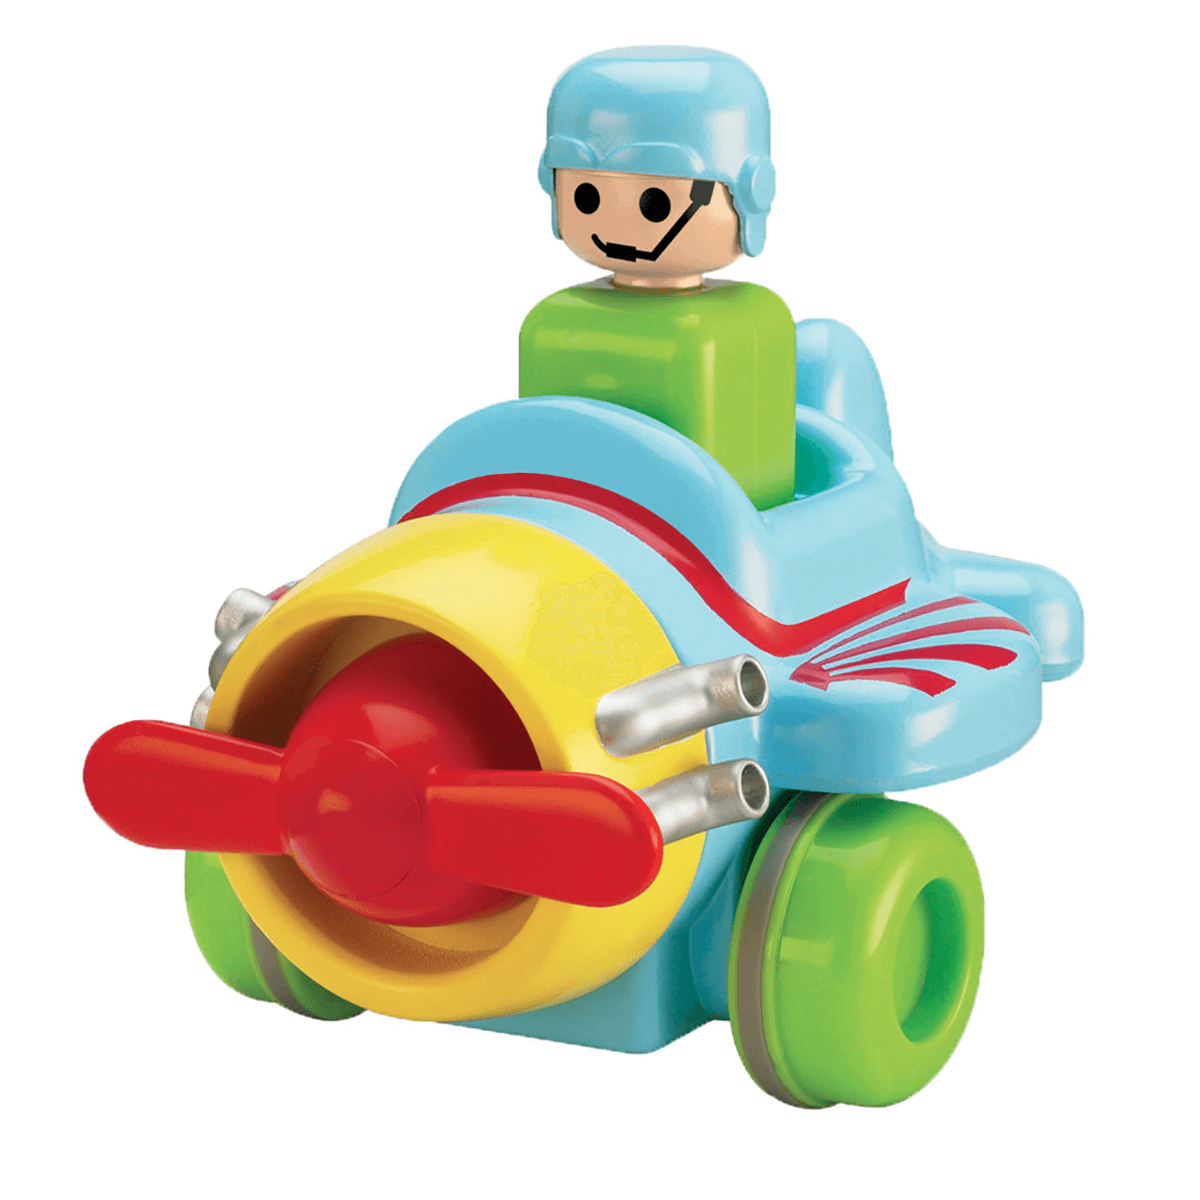 Tomy Toomies Push And Go Vehicle - Plane from Early Learning Center